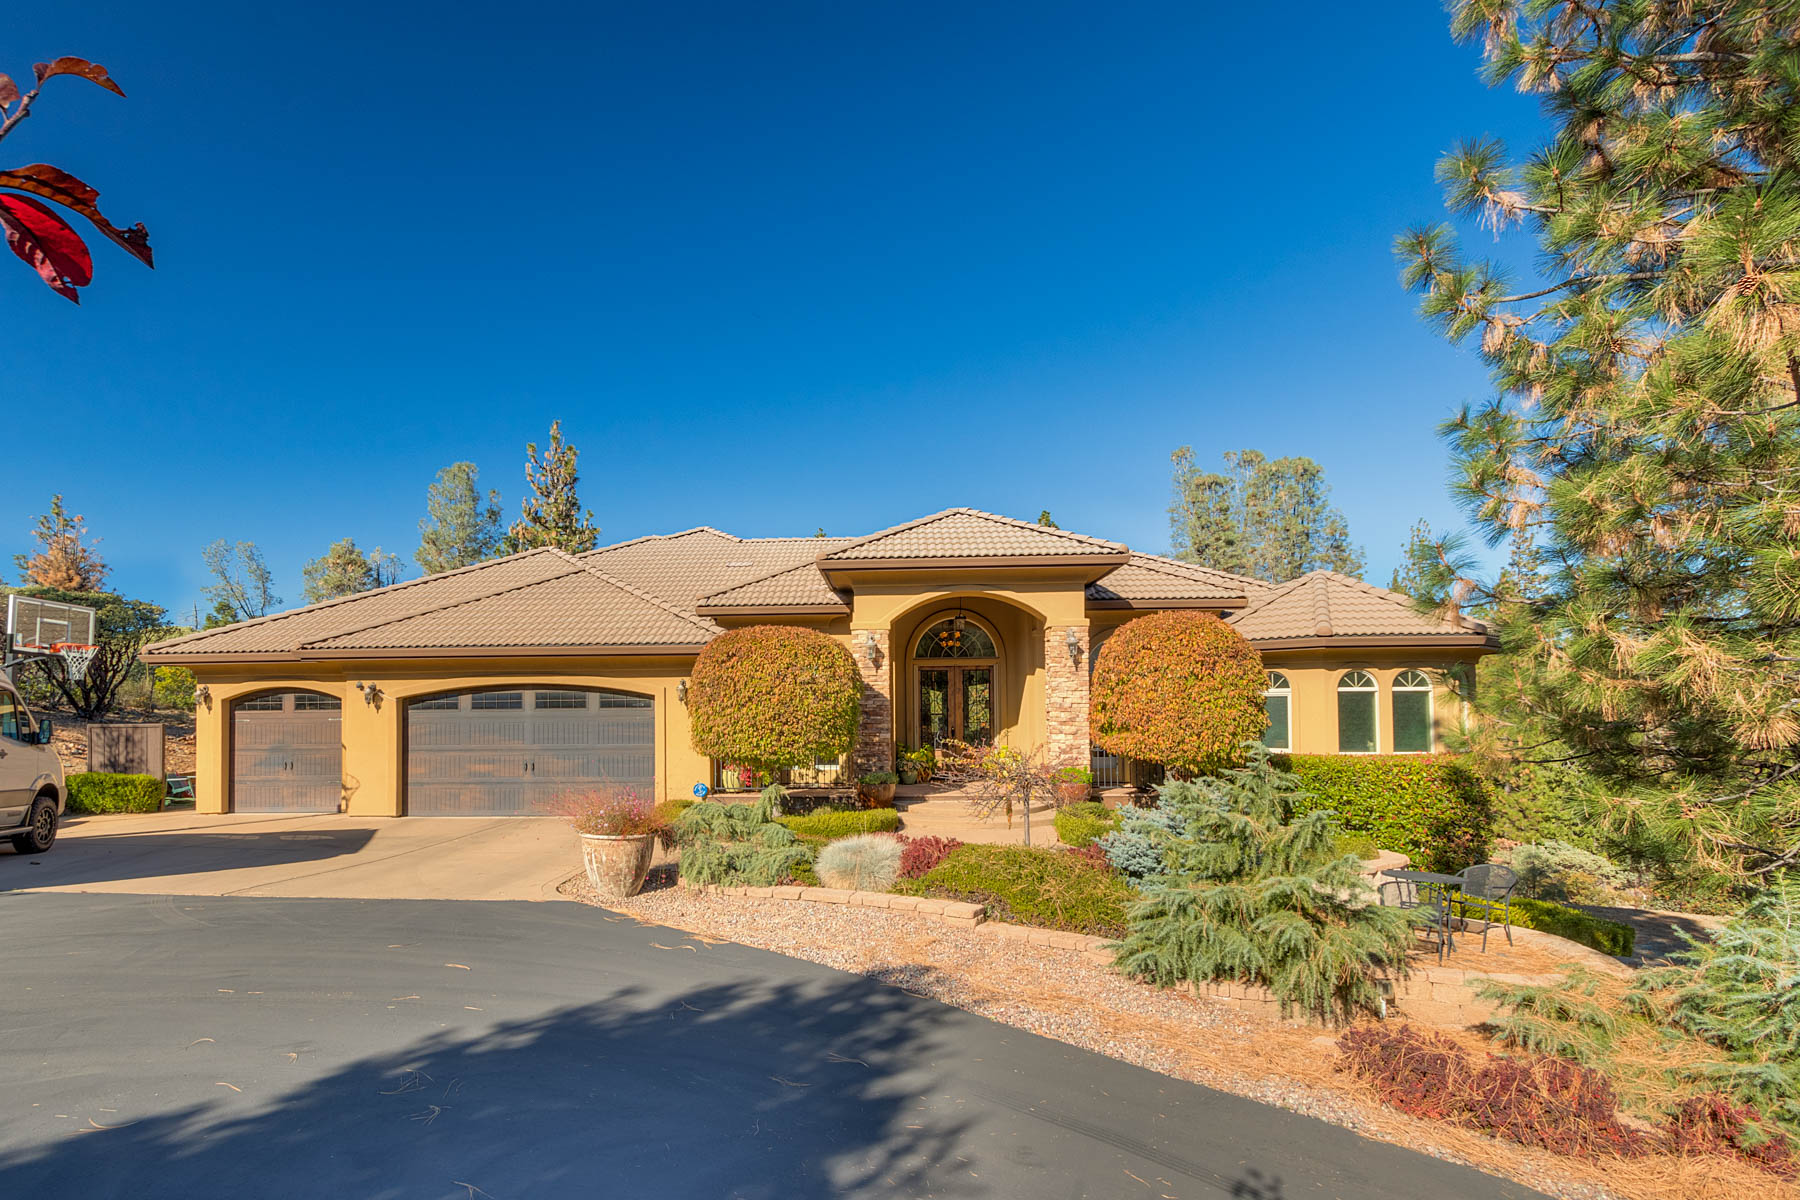 Single Family Homes for Active at 11492 Deer Creek Ln, Nevada City, CA 95959 11492 Deer Creek Lane Nevada City, California 95959 United States